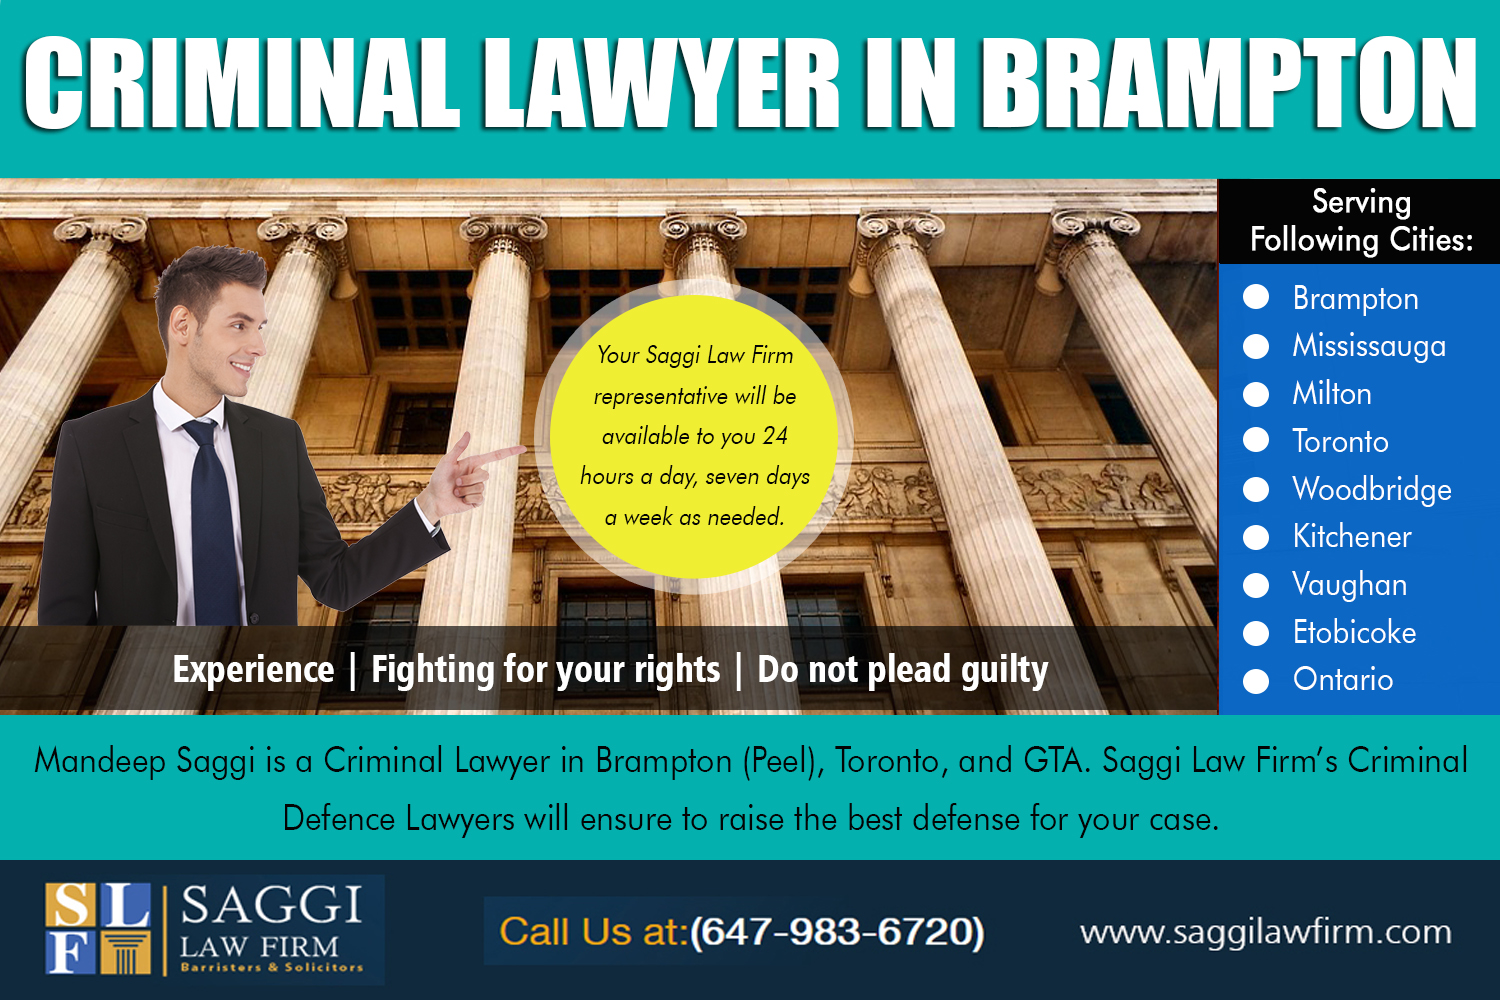 Brampton Criminal Lawyer Mandeep  Saggi (bramptoncriminallawyer)